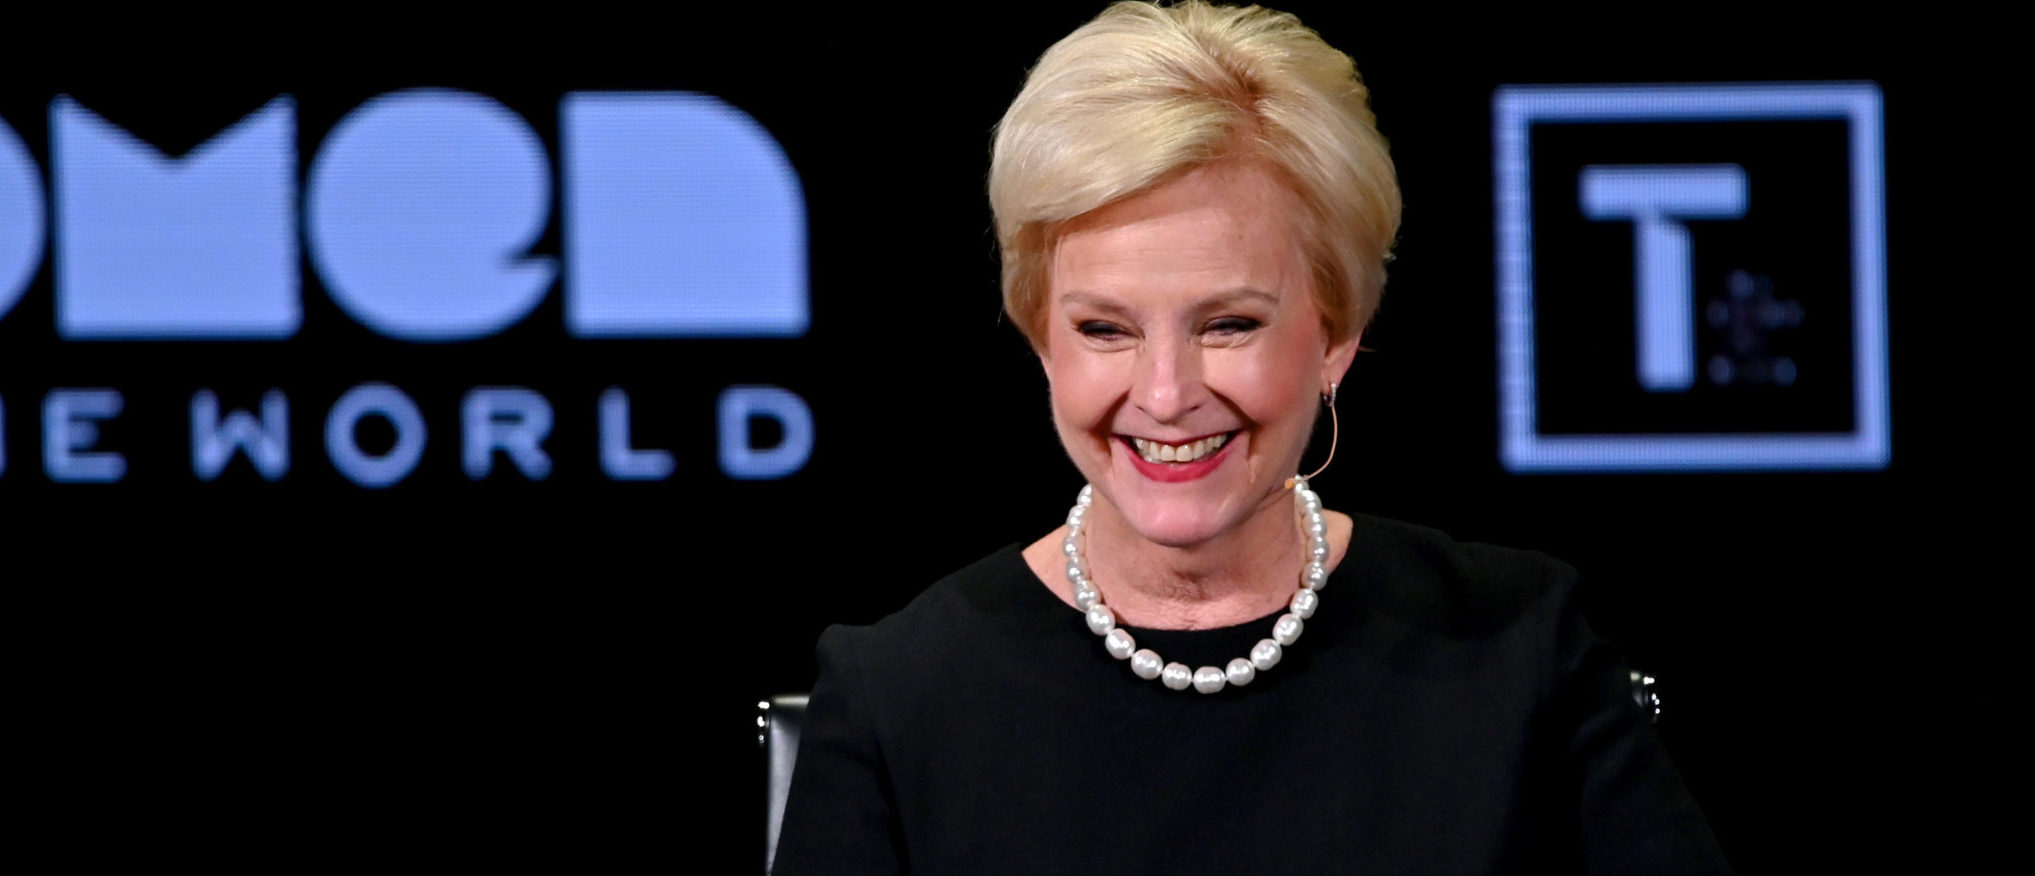 NEW YORK, NEW YORK - APRIL 12: Cindy McCain speaks during the 10th Anniversary Women In The World Summit at David H. Koch